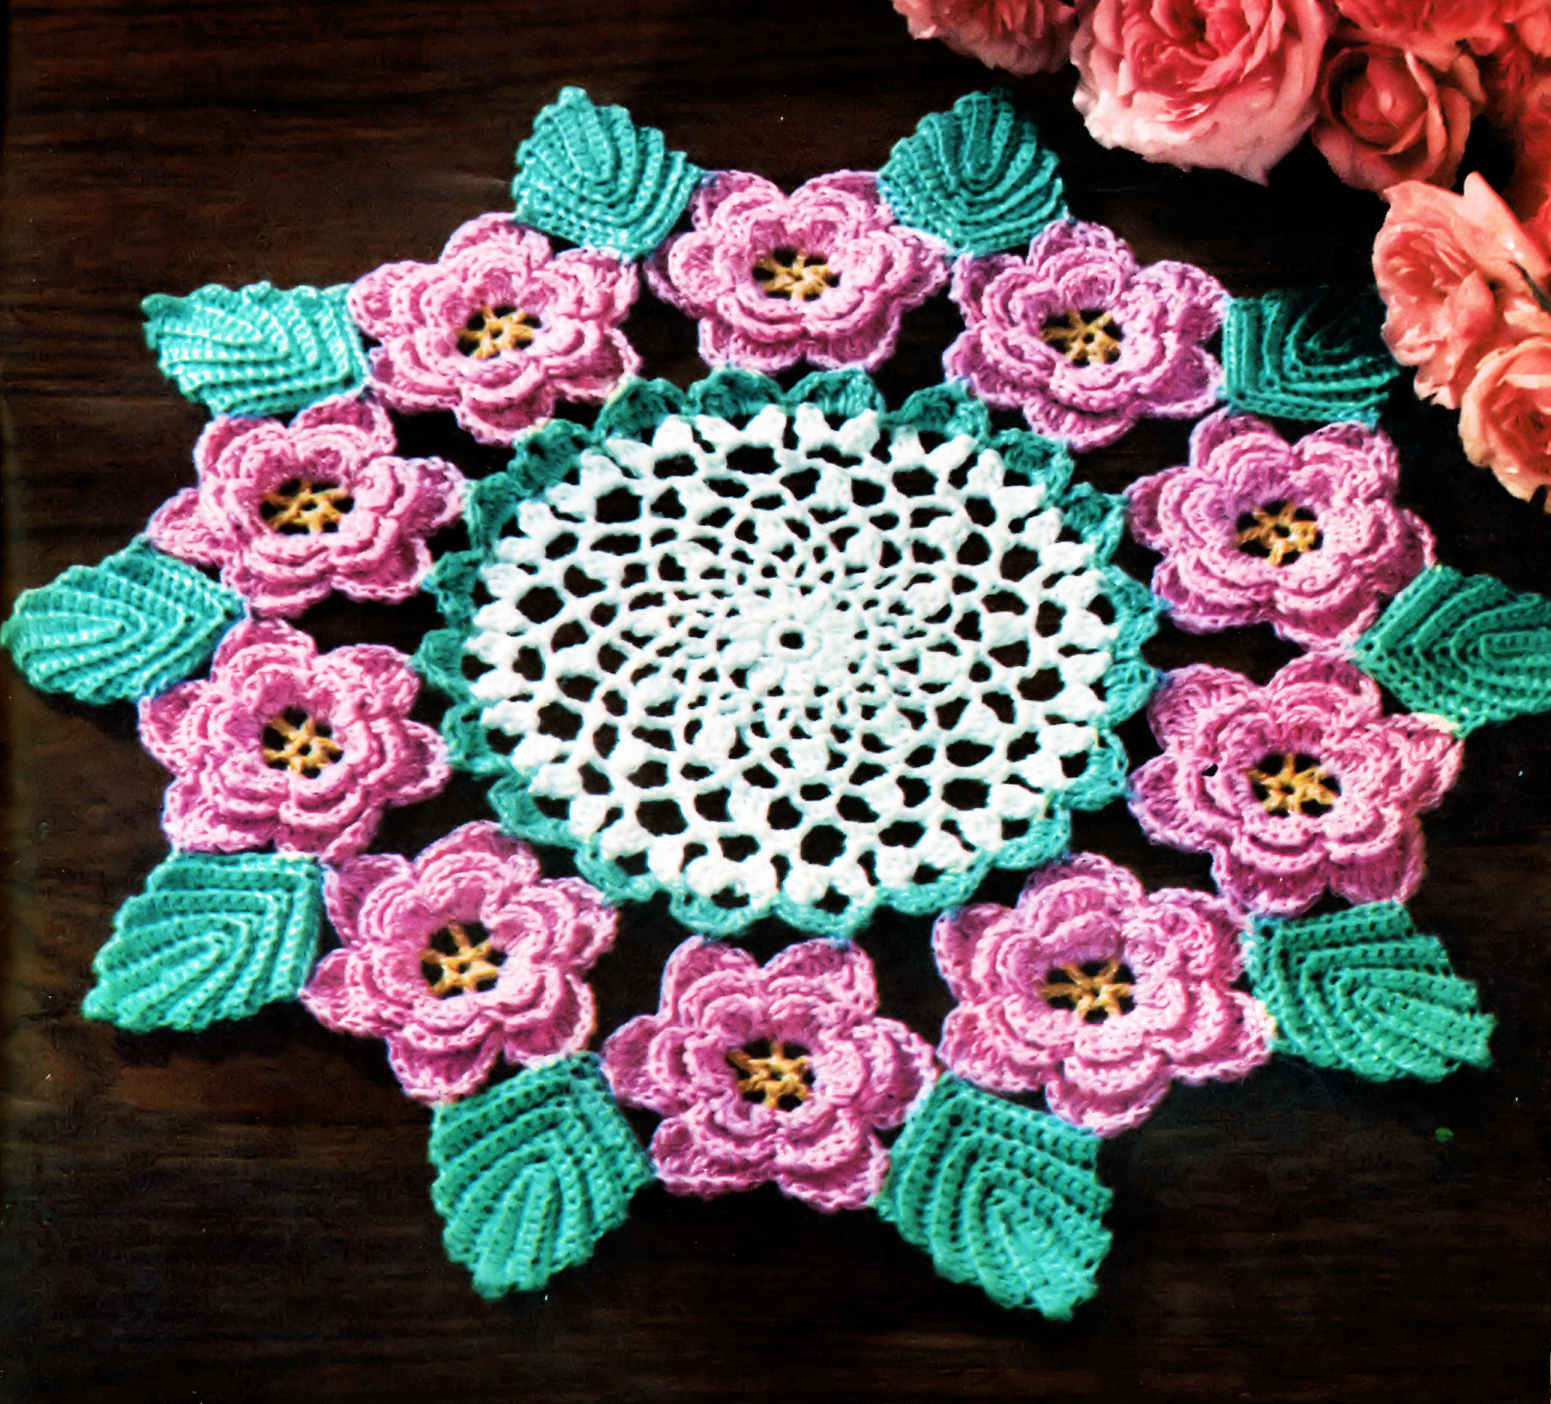 Crochet Free Patterns Doilies : CROCHET DOILY FREE PATTERN ROSE Patterns